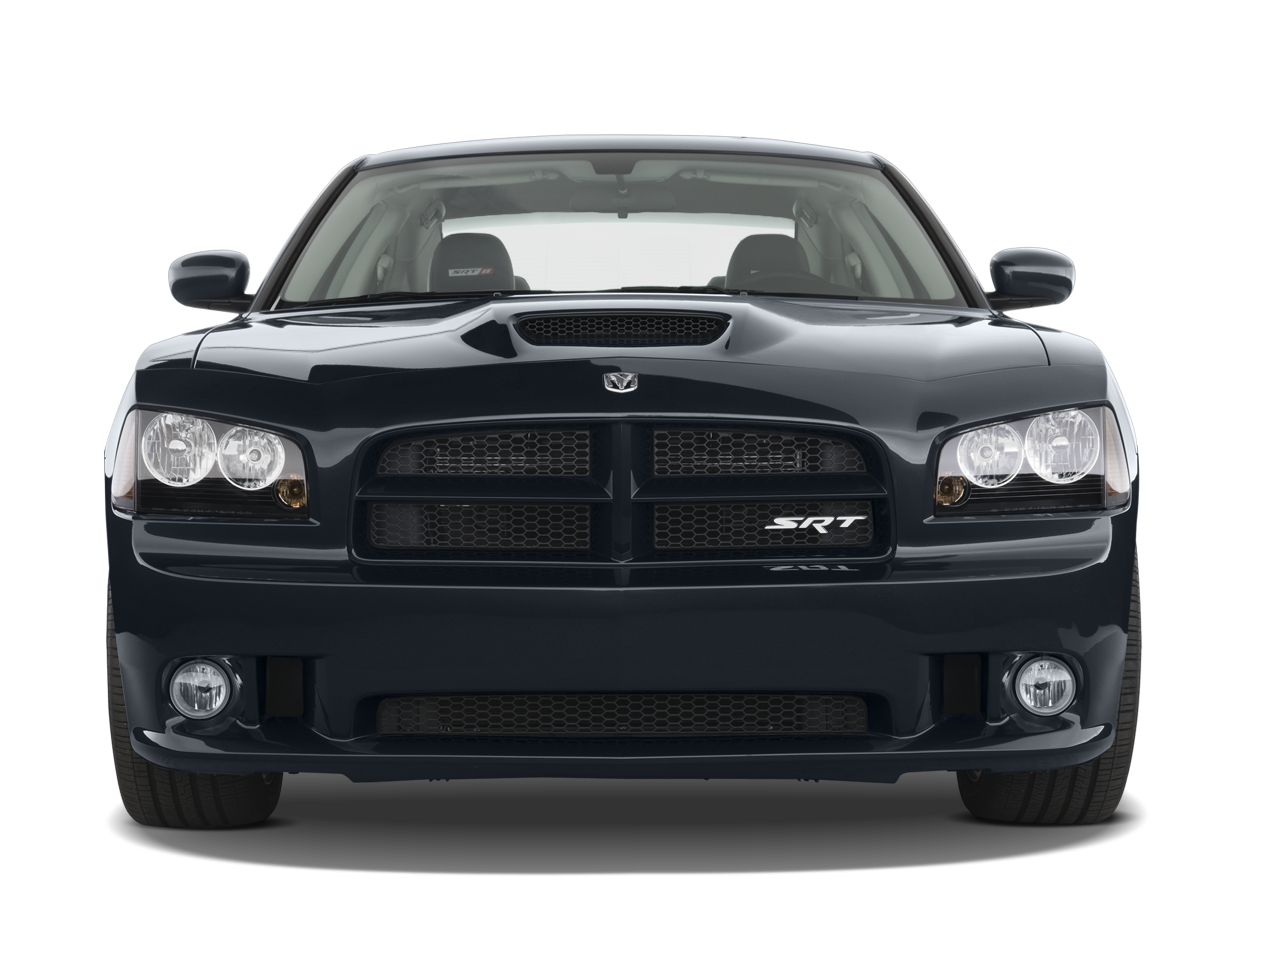 2010 dodge charger srt8 dodge sports coupe review automobile 650 sciox Choice Image